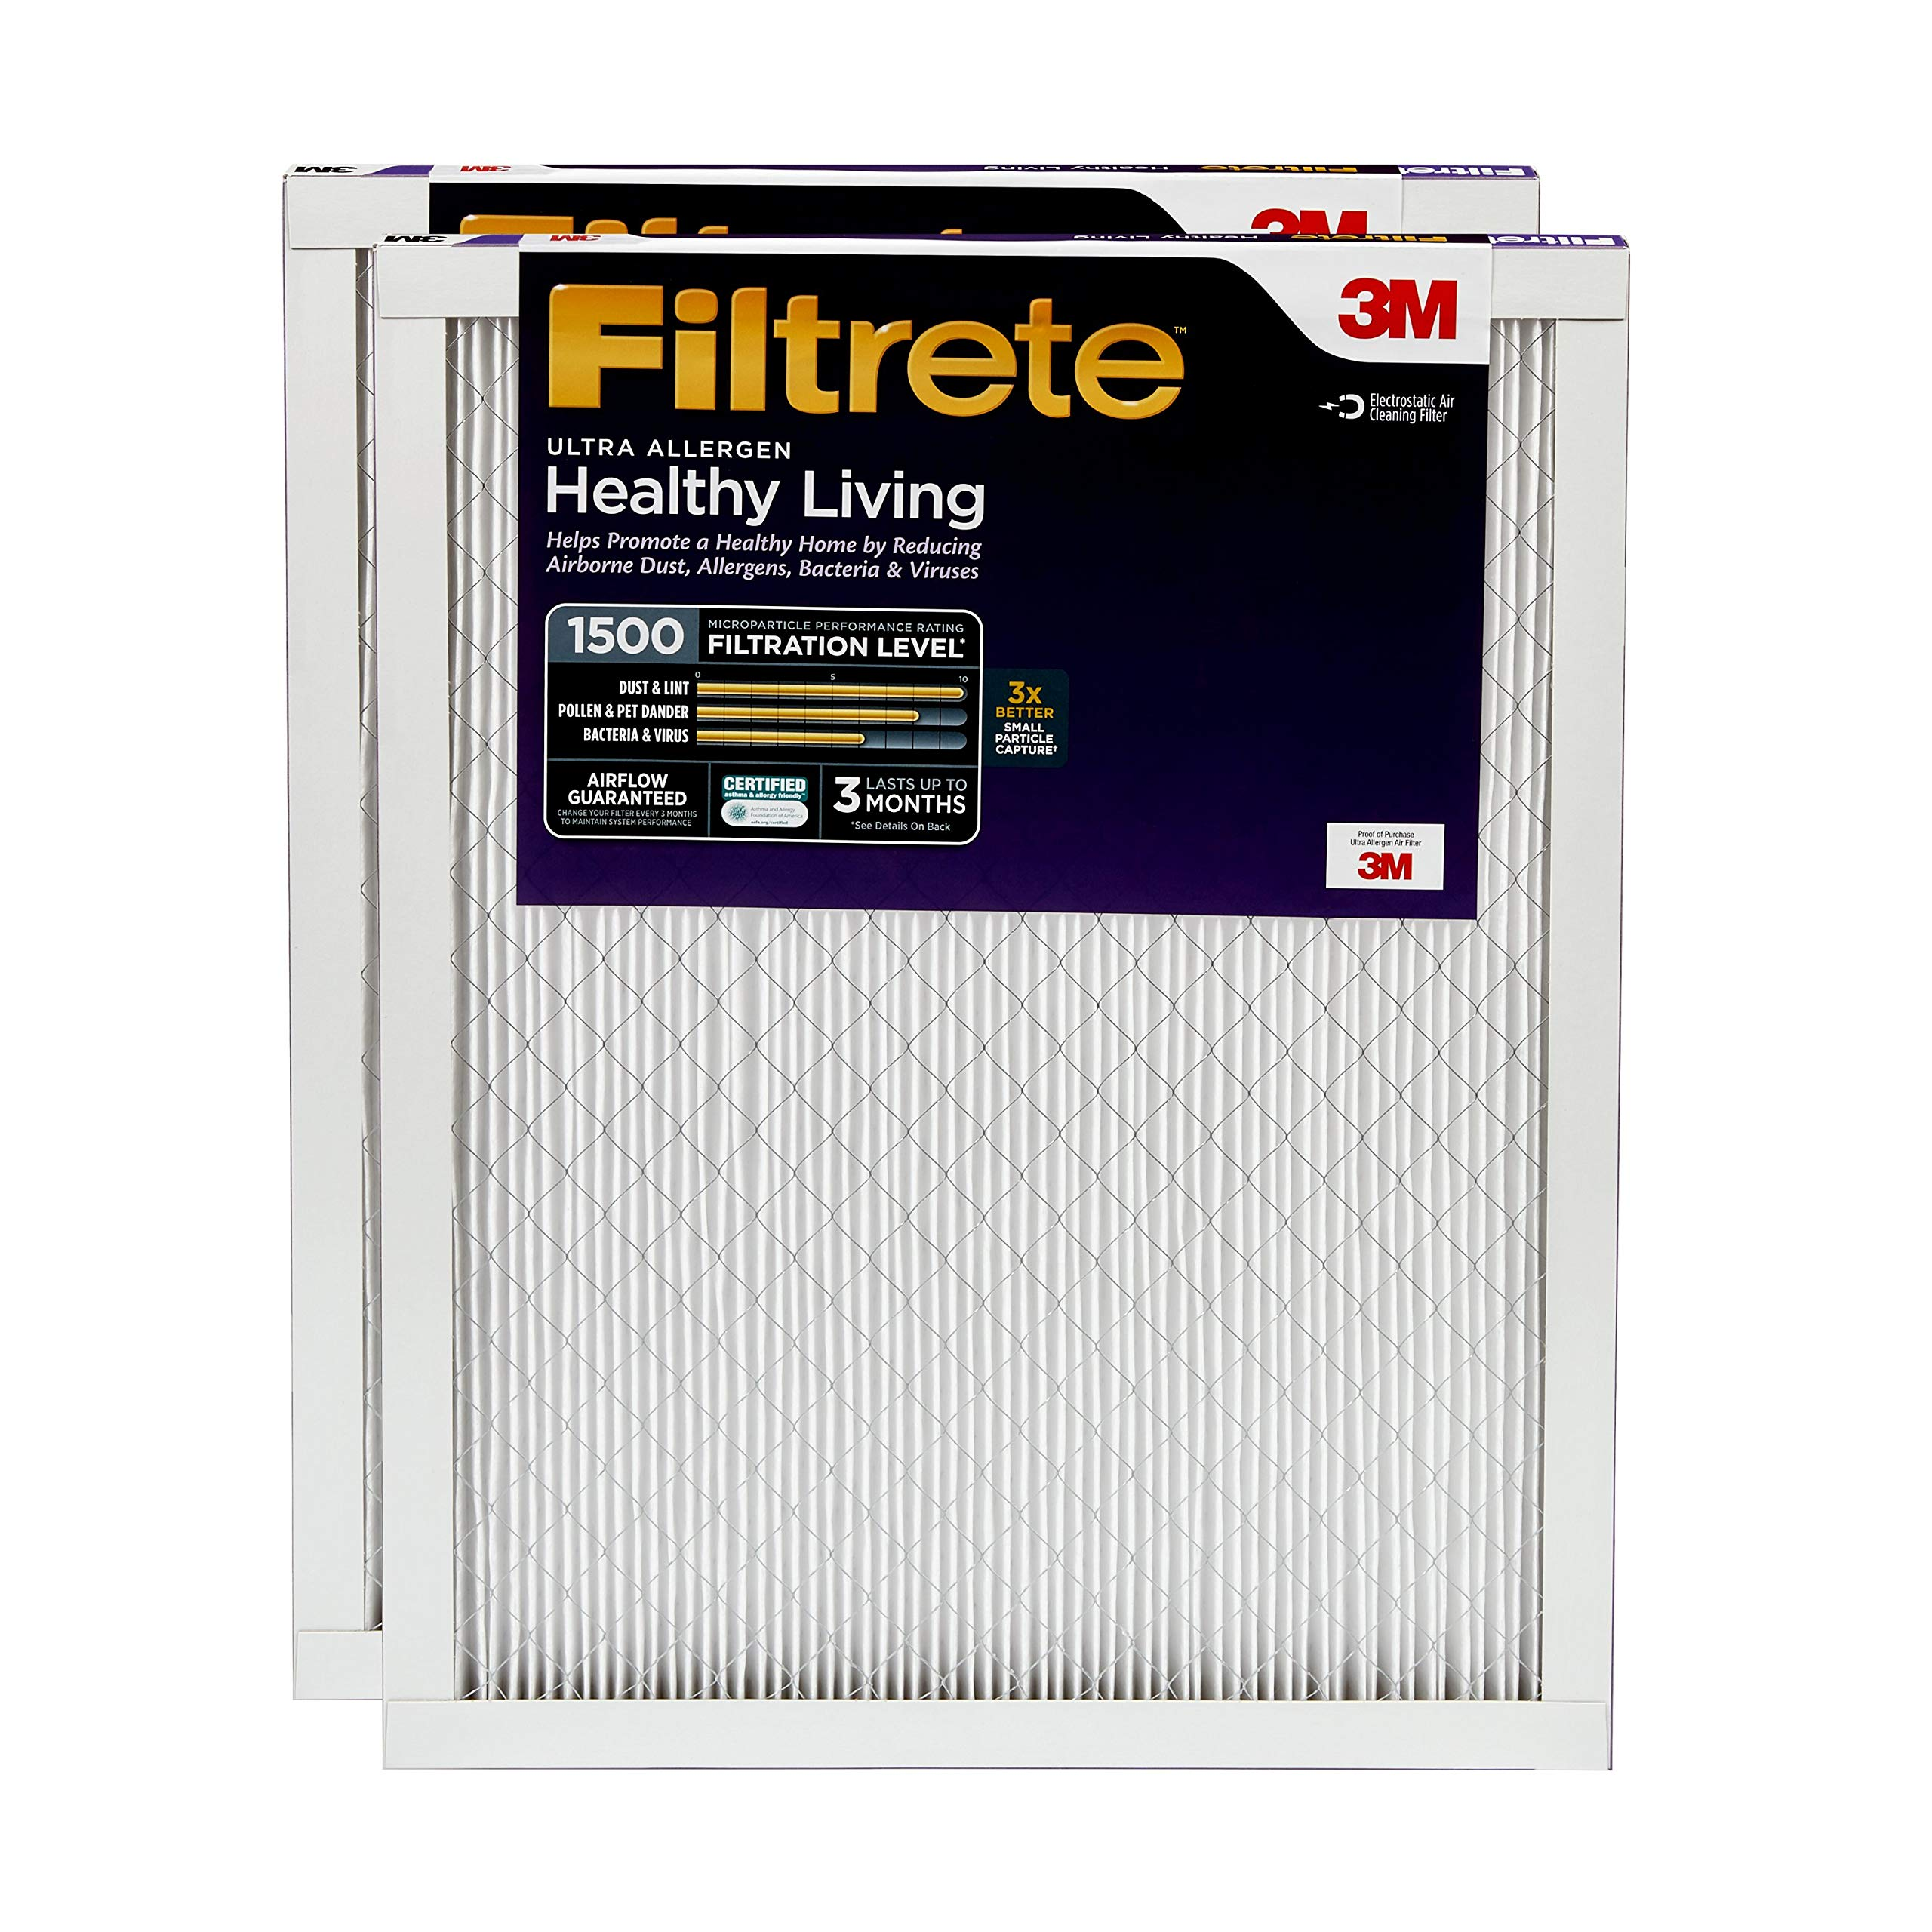 Filtrete 16x25x1, AC Furnace Air Filter, MPR 1500, Healthy Living Ultra Allergen, 2-Pack by Filtrete